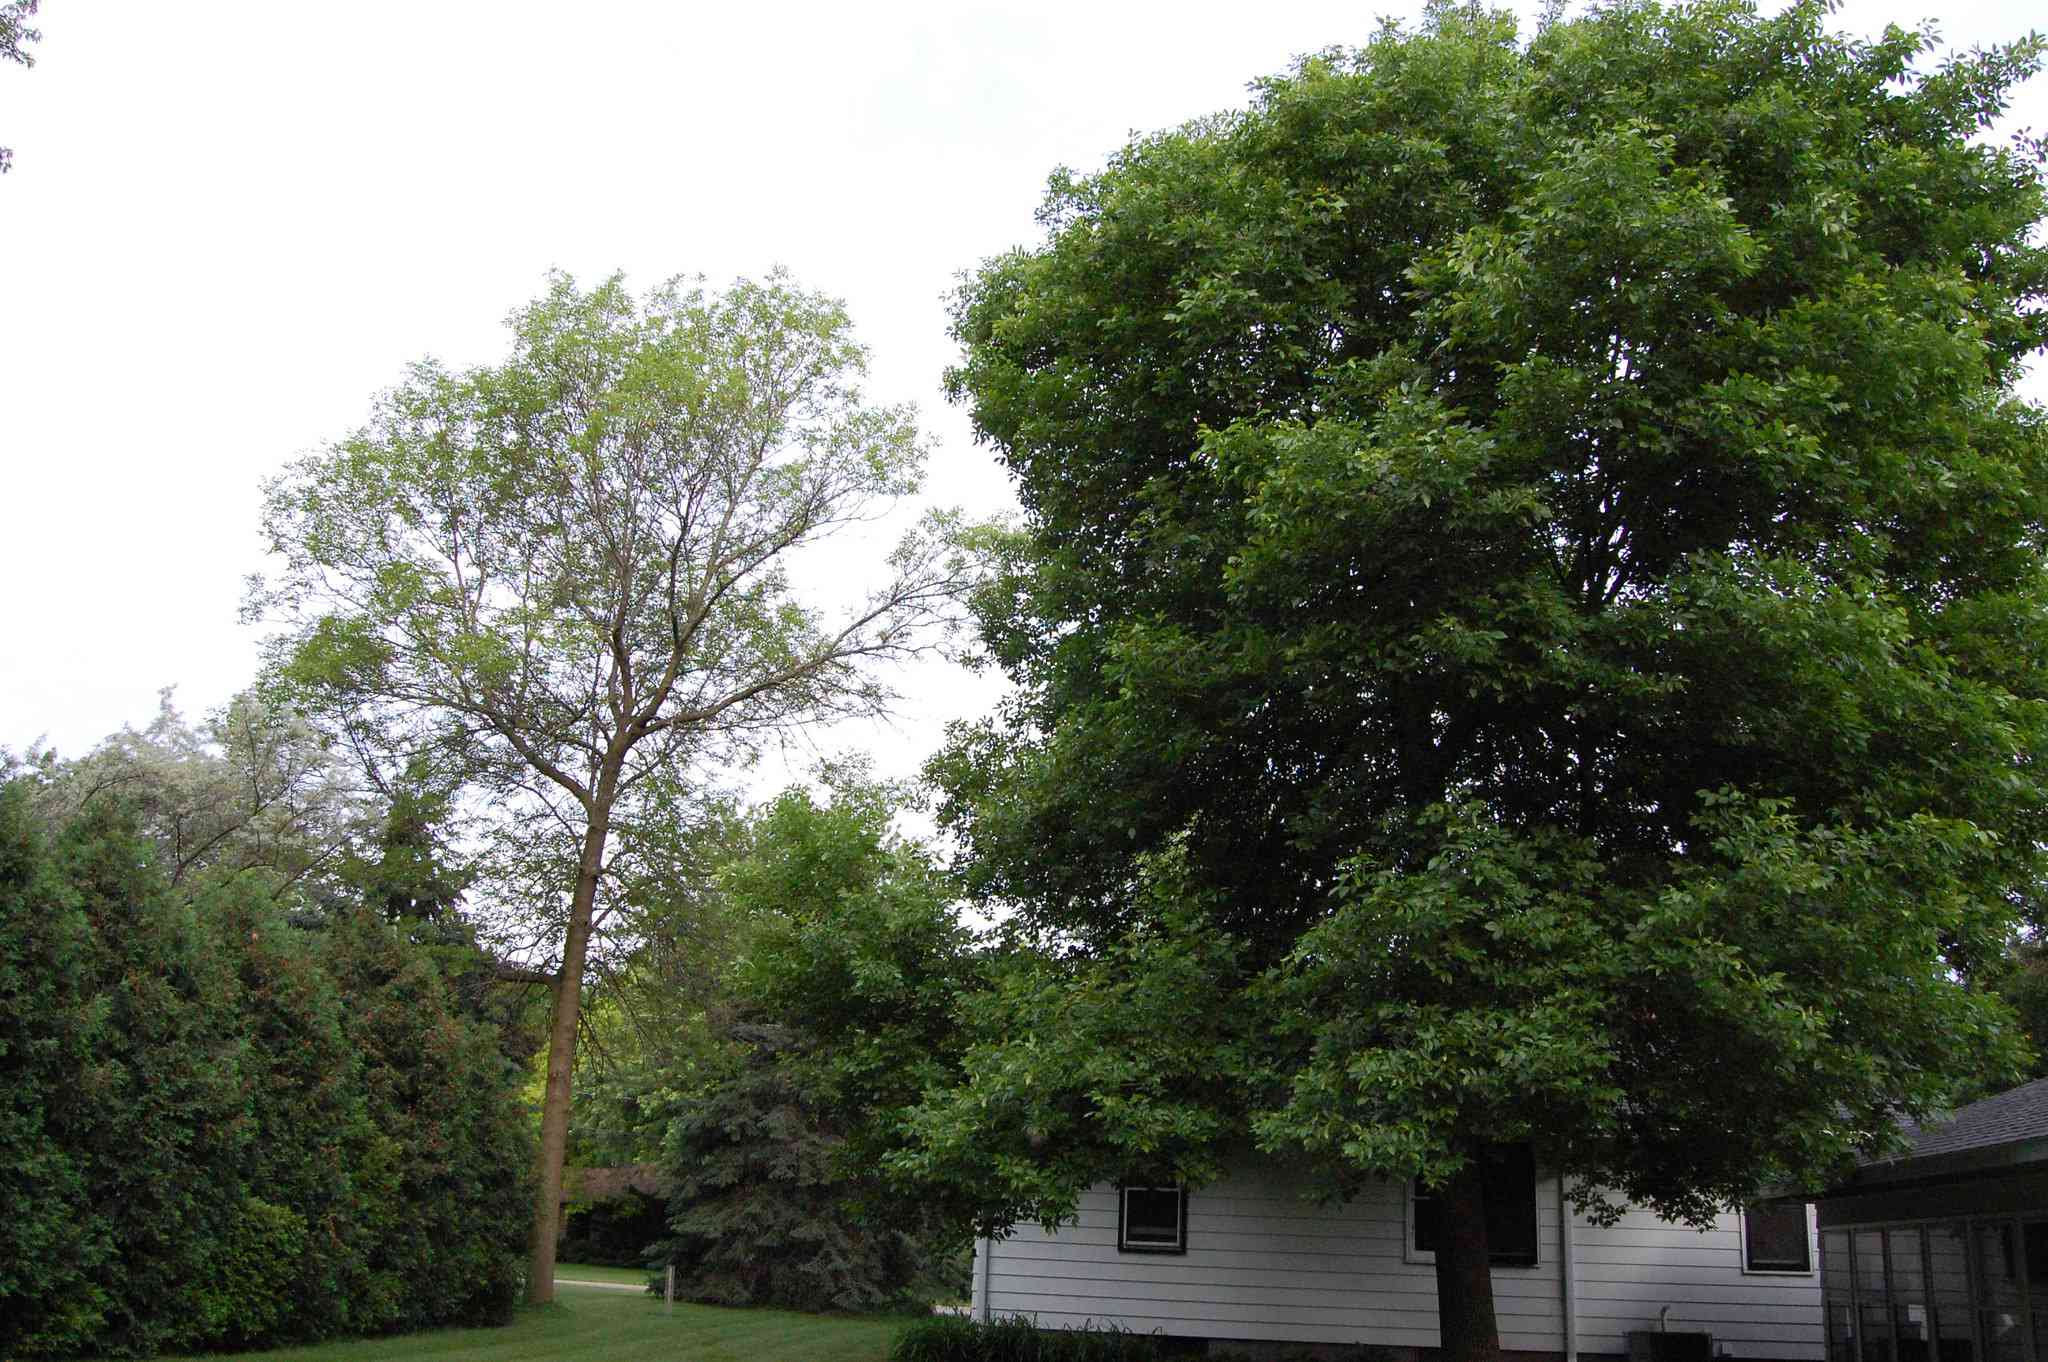 A green ash tree growing by a house in the country.